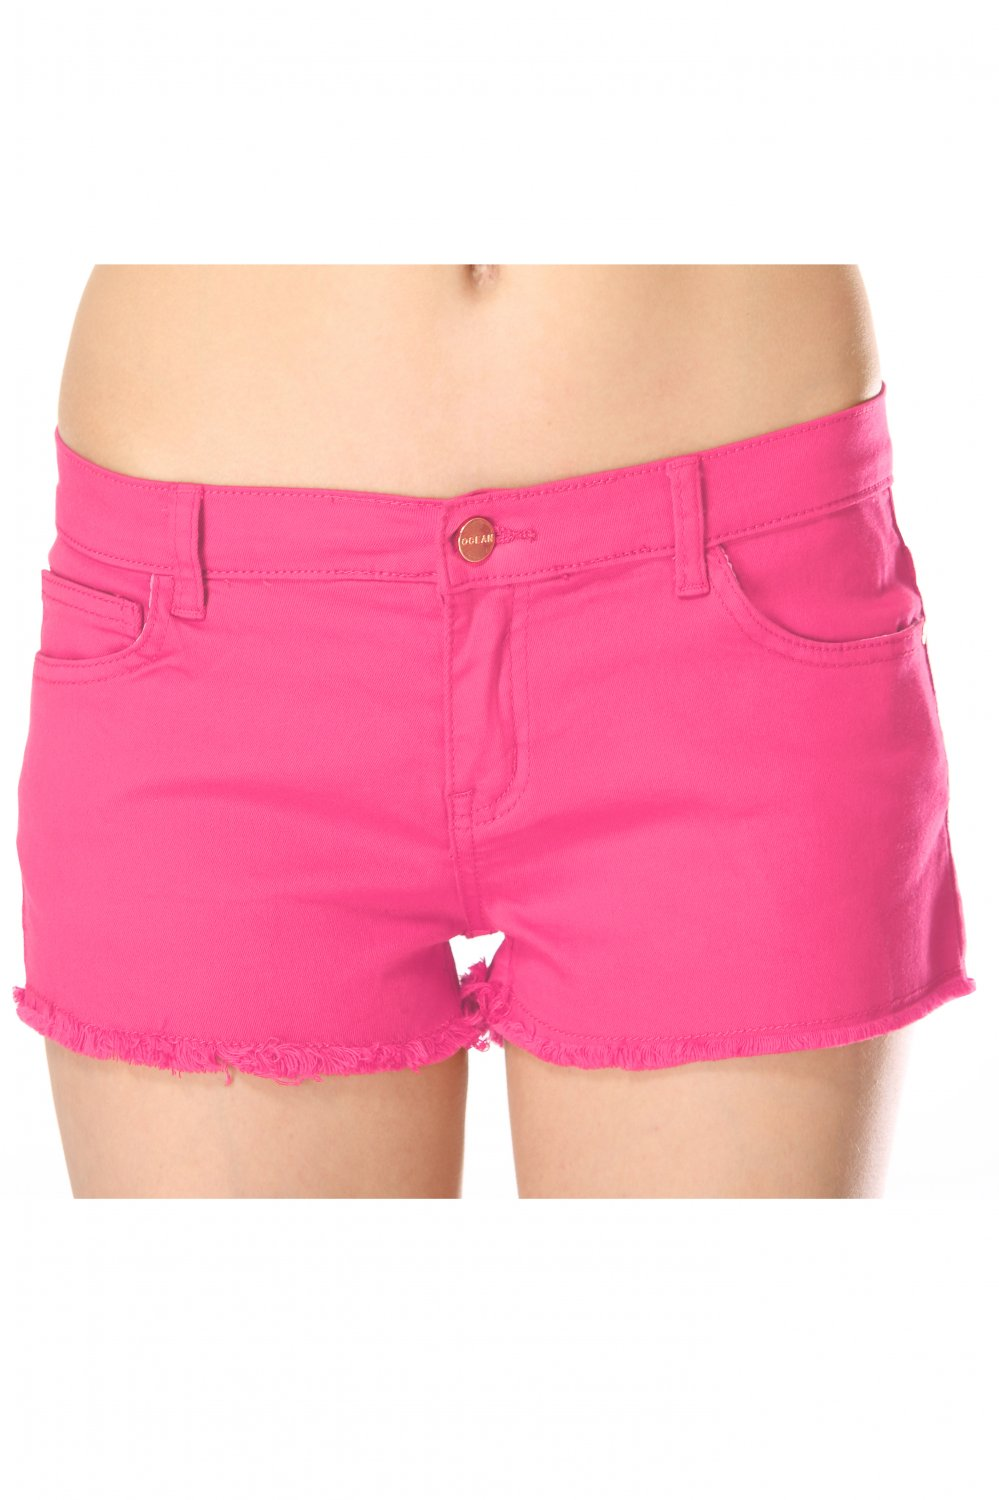 Summer cotton pink shorts